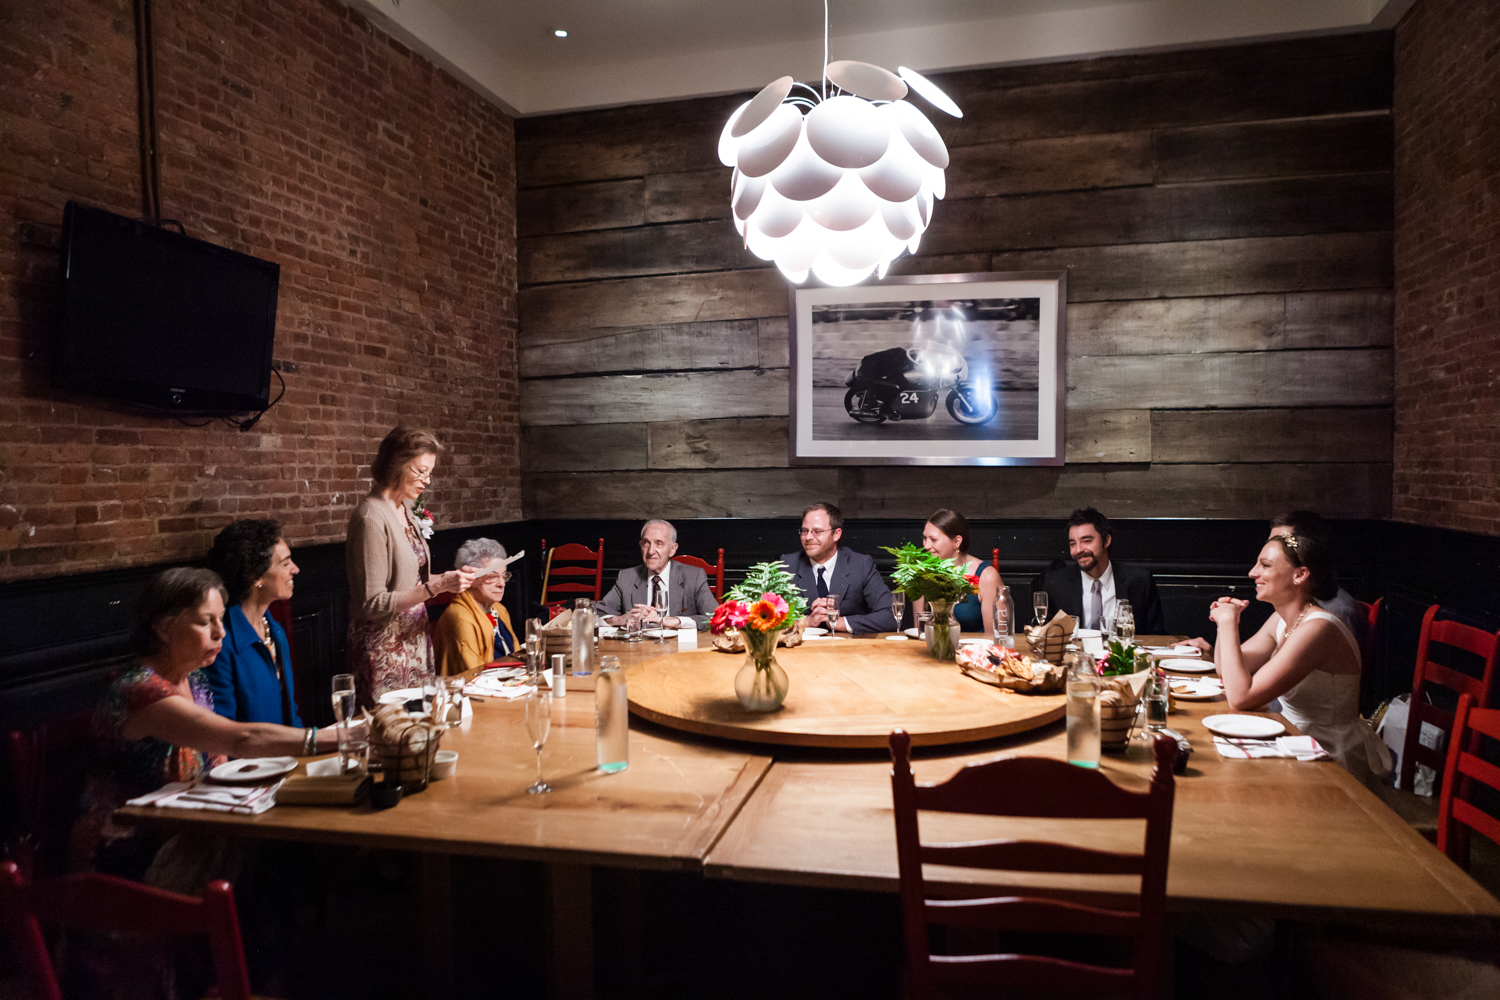 Wide shot of people seated around wooden table at Tribeca reception